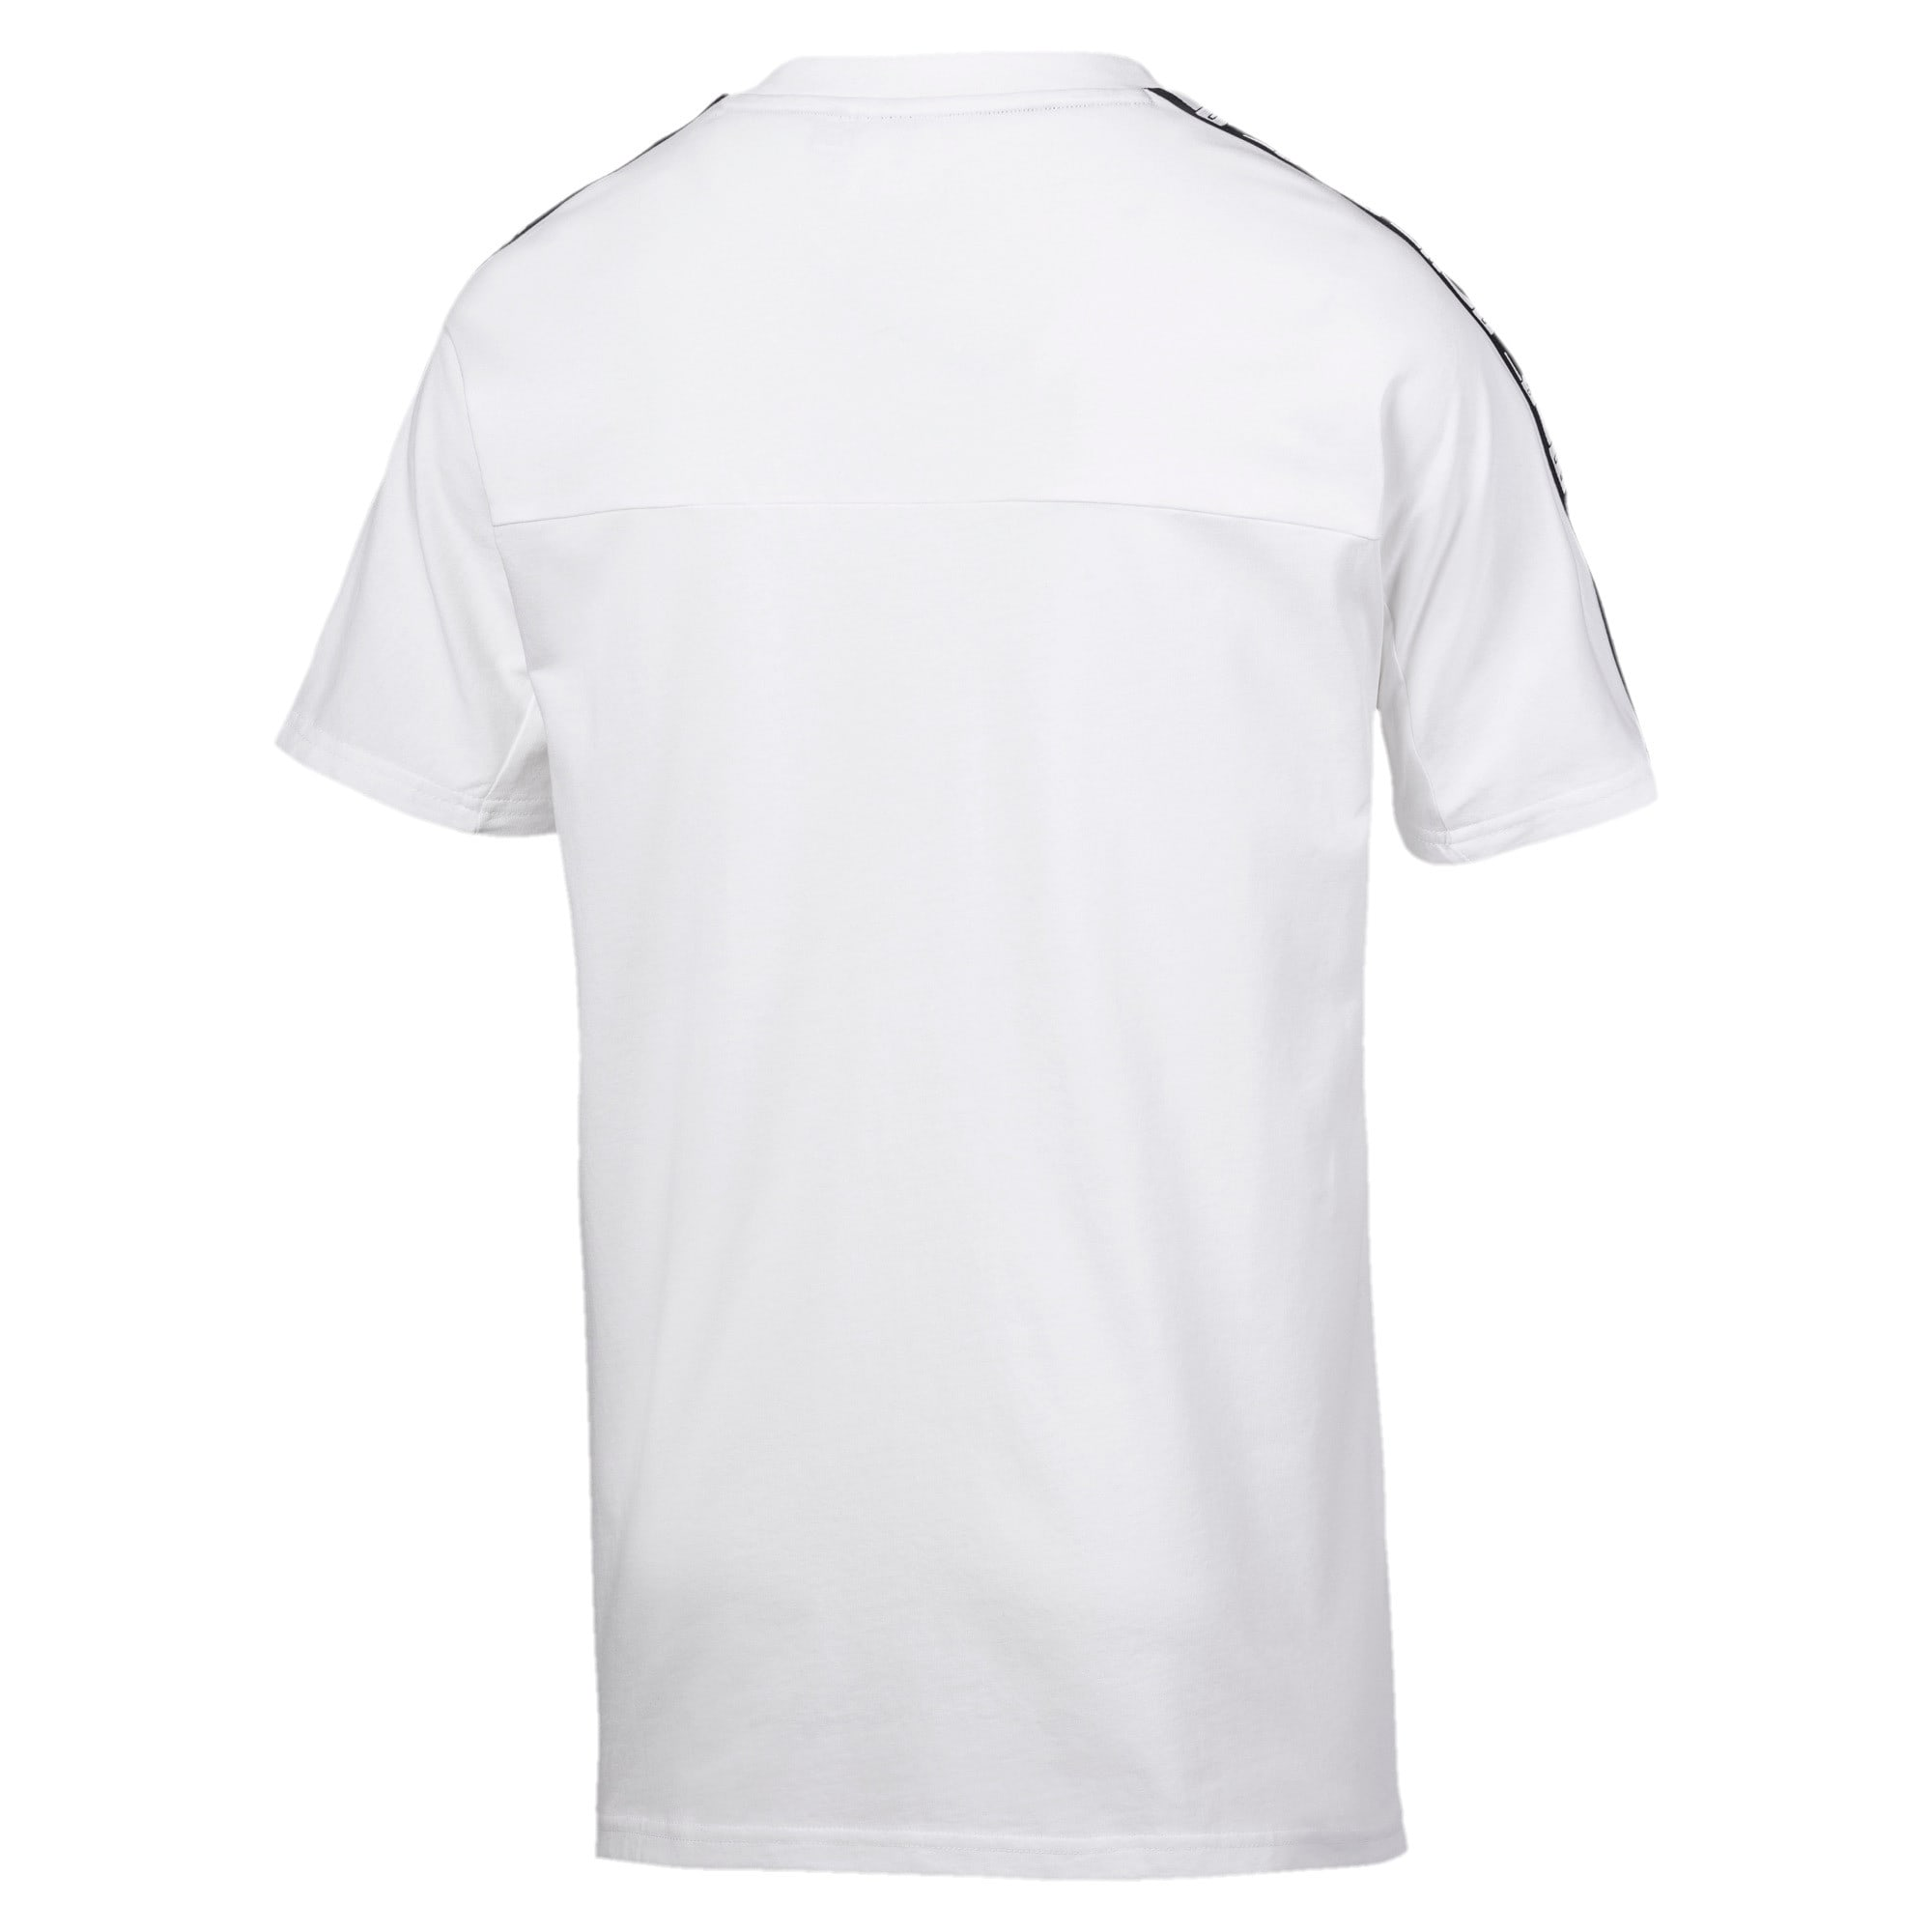 Thumbnail 5 of PUMA XTG Short Sleeve Men's Tee, Puma White, medium